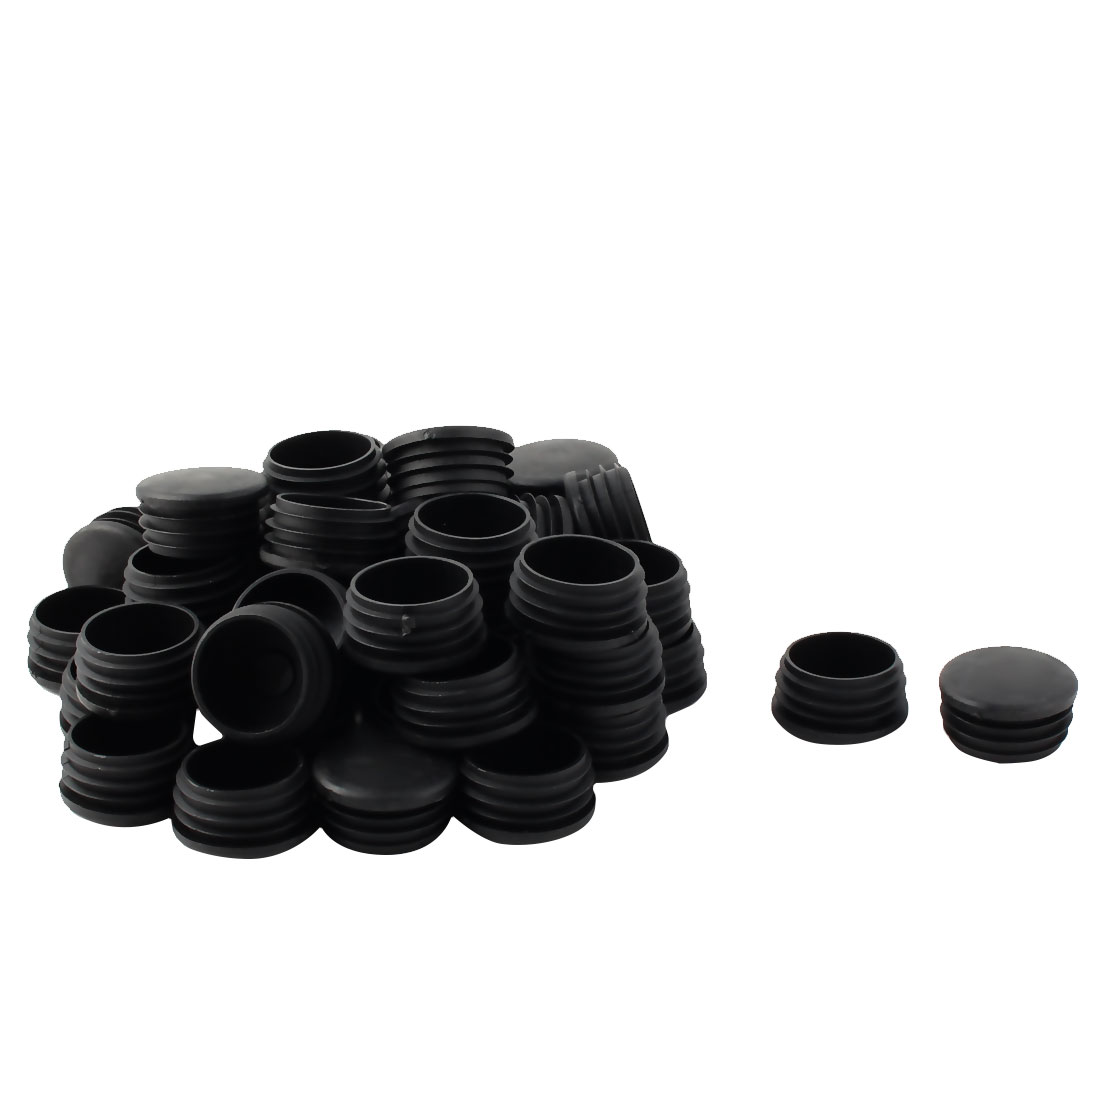 Plastic Round Tube Insert Blanking End Protectors Caps Black 38mm 50 PCS